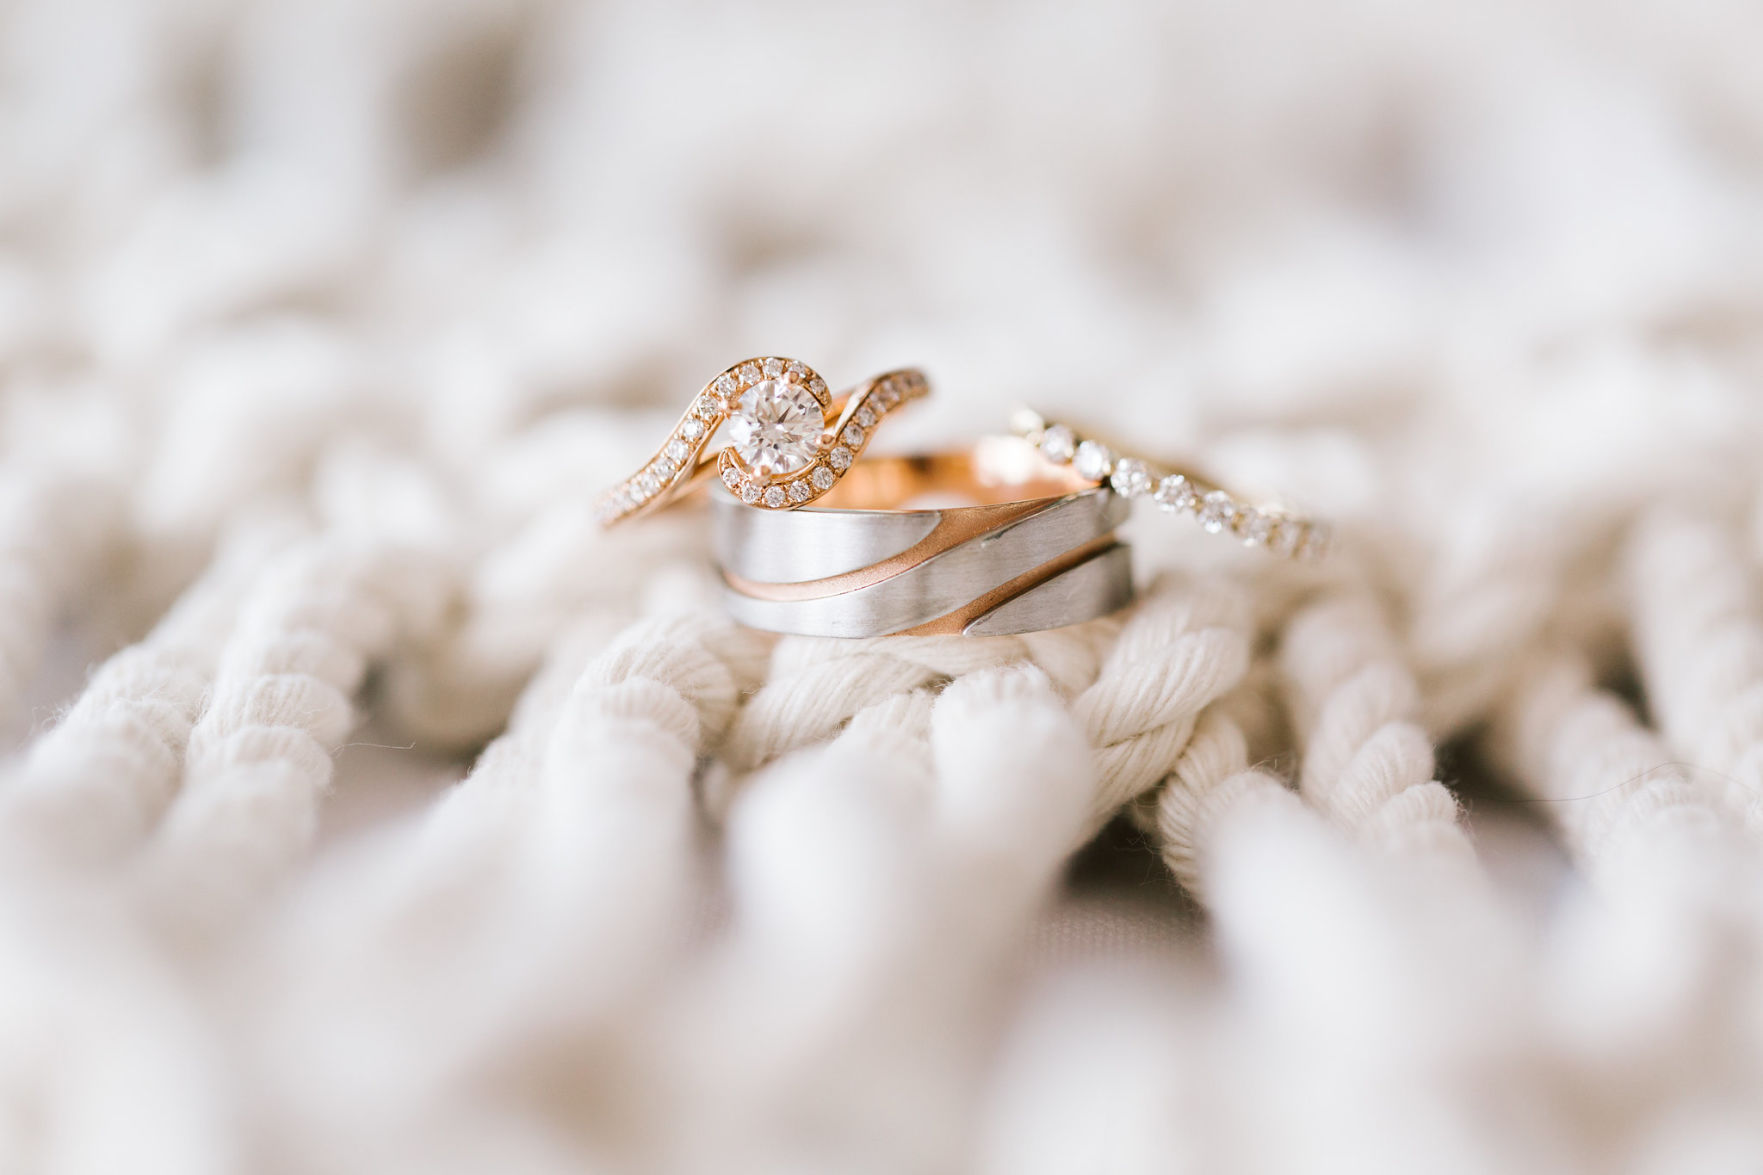 Our Top 15 Favorite Wedding and Engagement Ring Styled Photos